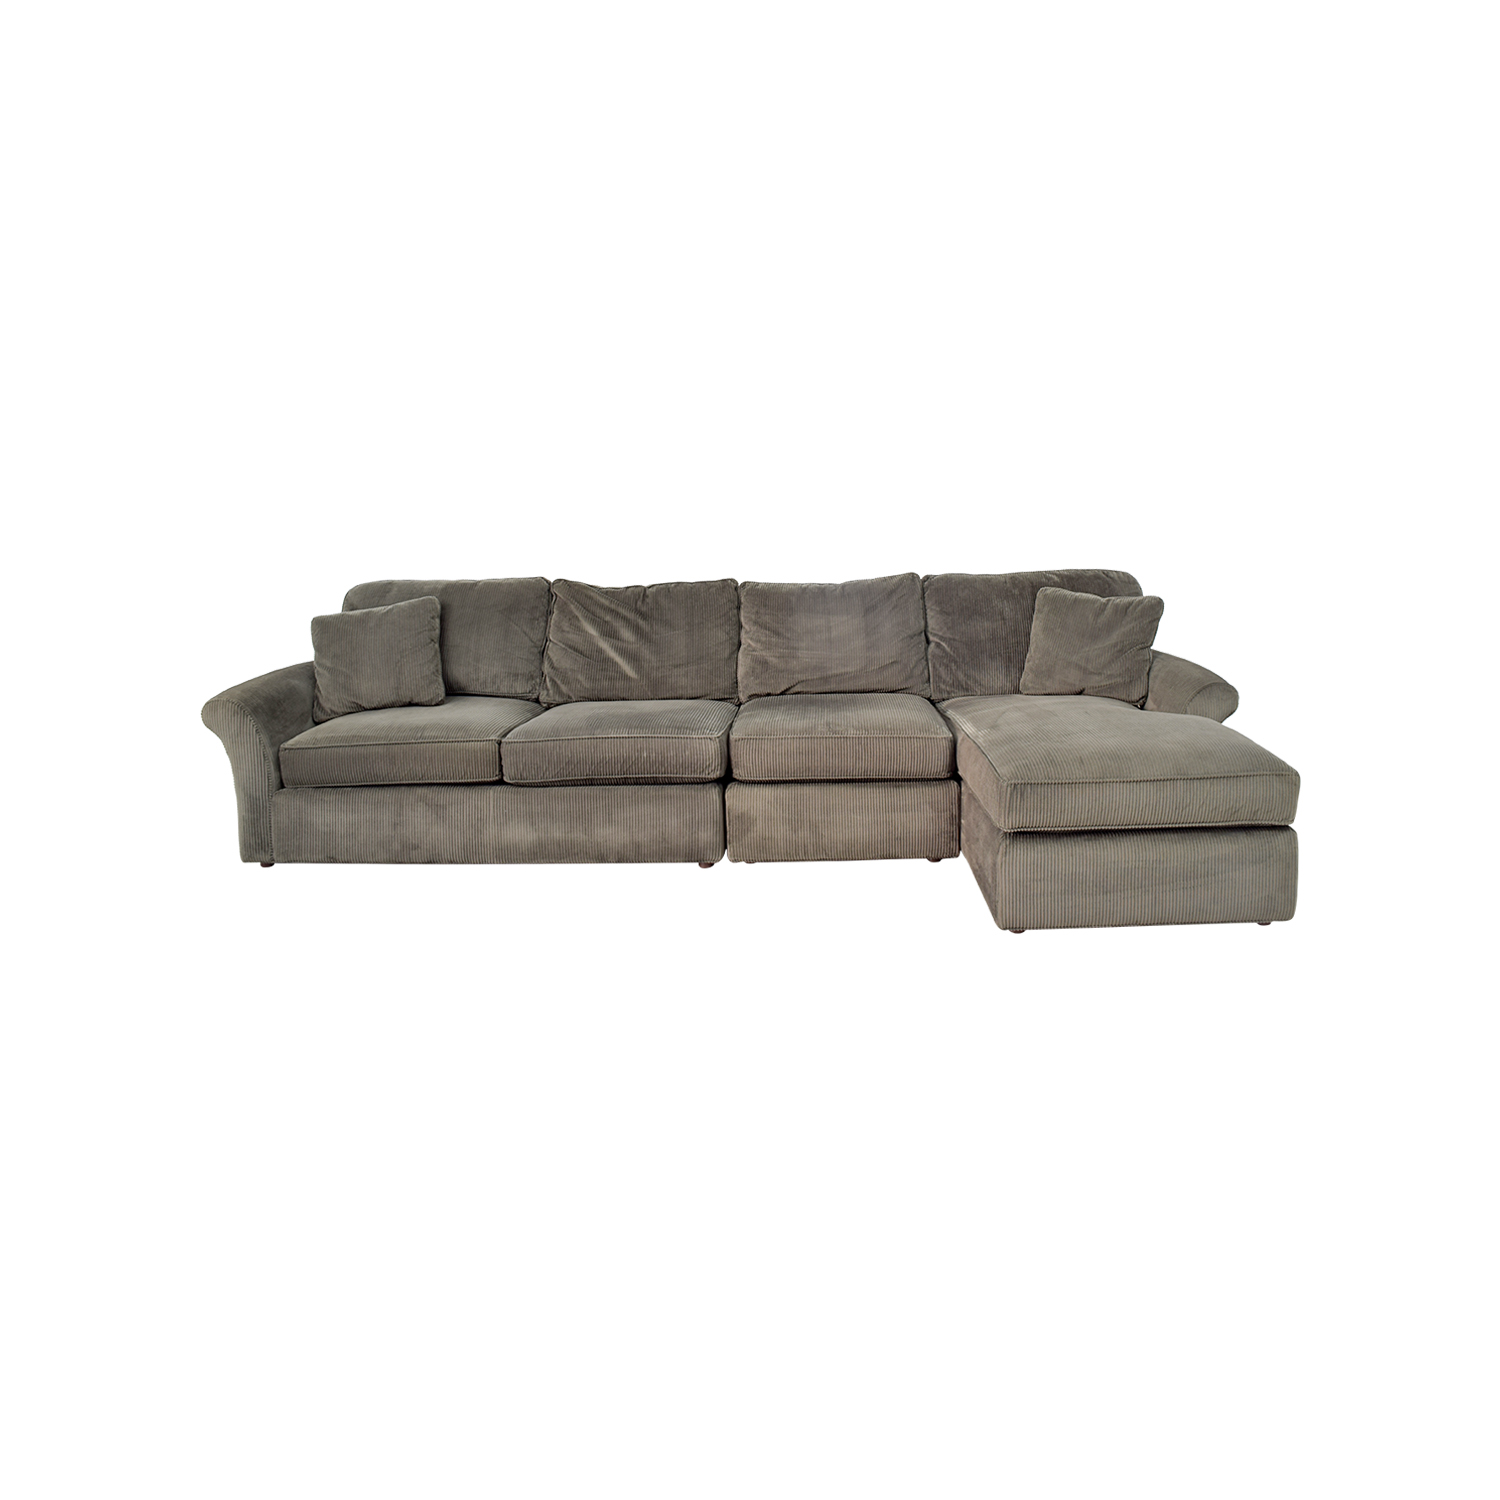 buy Macys Modern Concepts Charcoal Gray Corduroy Chaise Sectional Macys Sofas